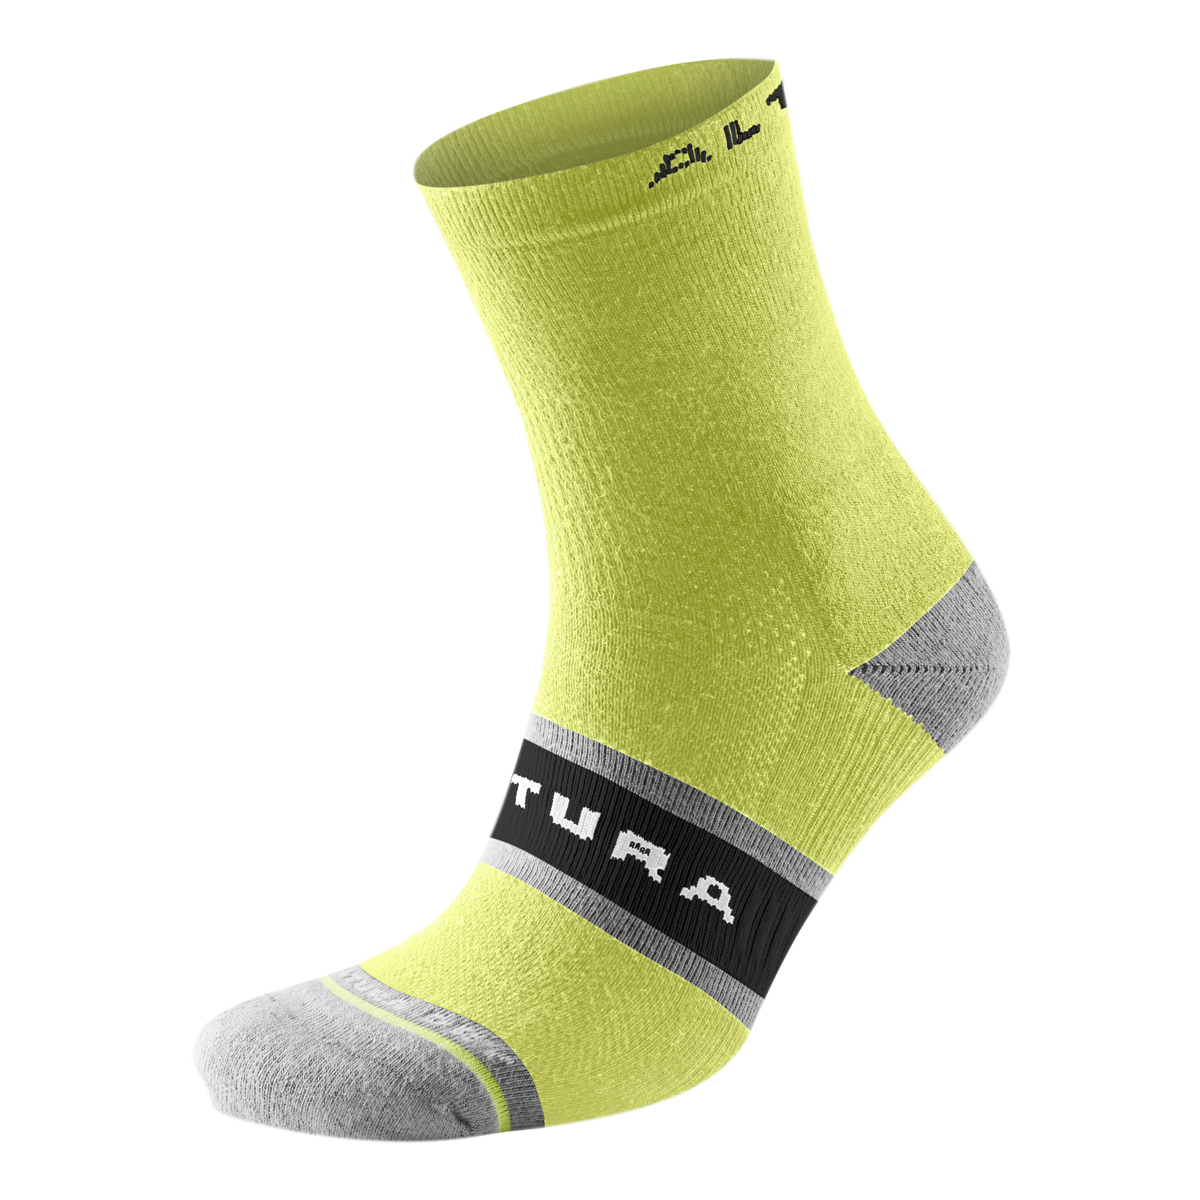 ALTURA DRY ELITE SOCKS 3 PACK 2016: WHITE/BLACK/HI VIZ YELLOW L (10-12)